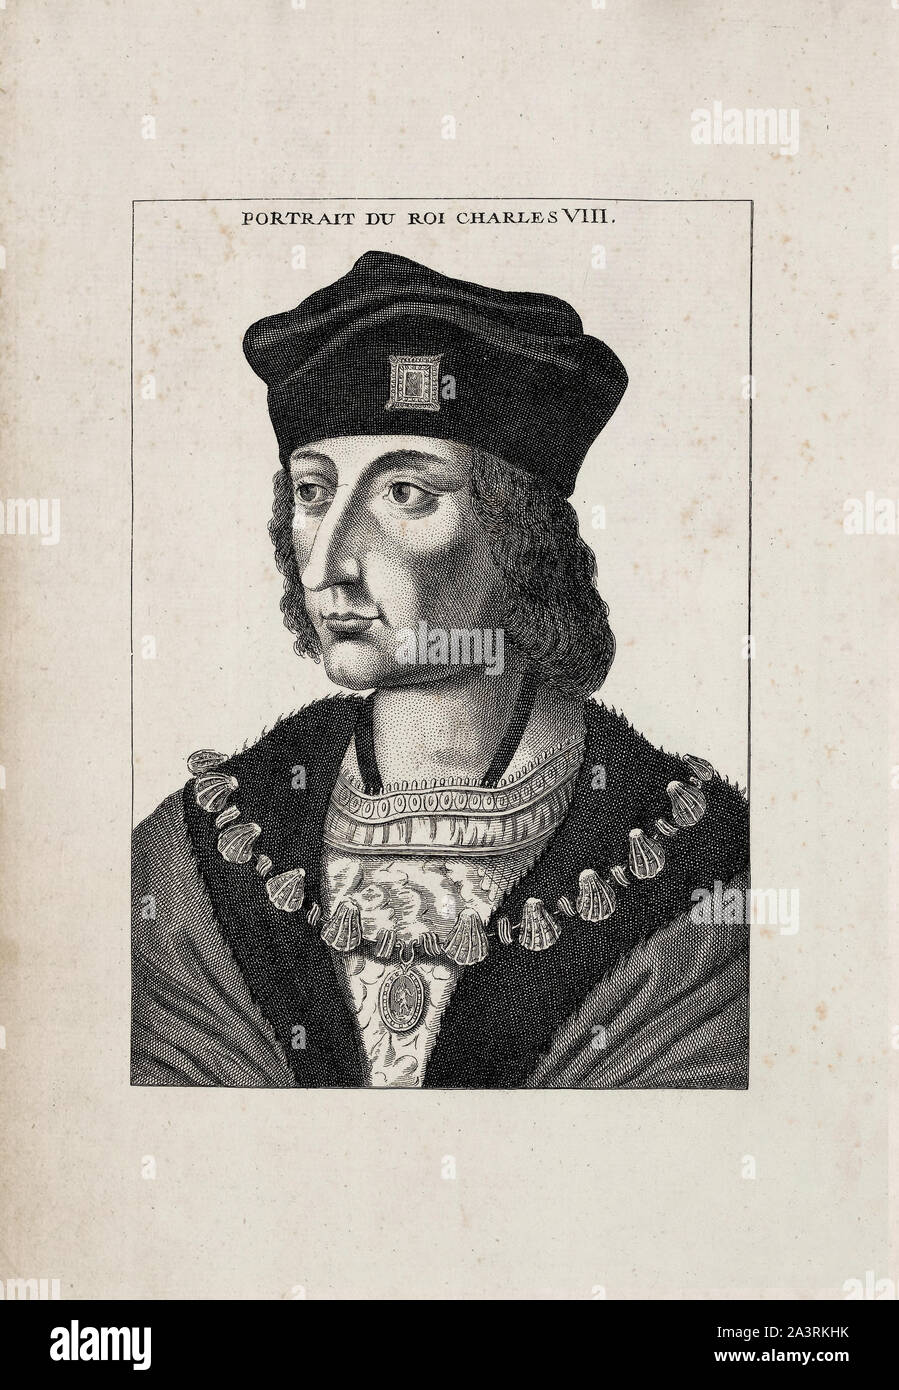 History of France. Charles VIII, called the Affable (1470 – 1498), was King of France from 1483 to his death in 1498. He succeeded his father Louis XI Stock Photo